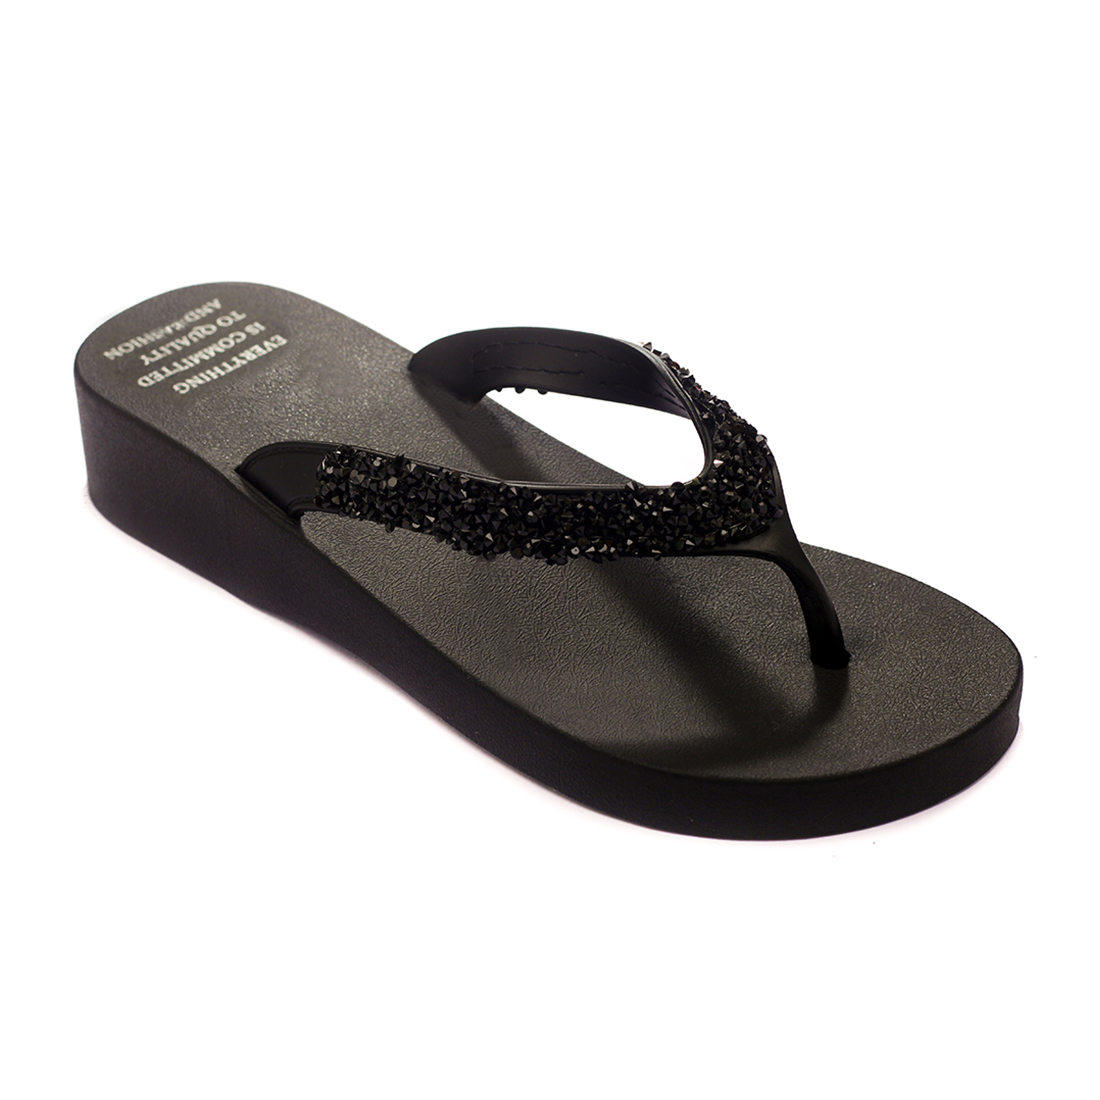 Trends & Trades   TRENDS & TRADES Black Thong Flip Flops For Women